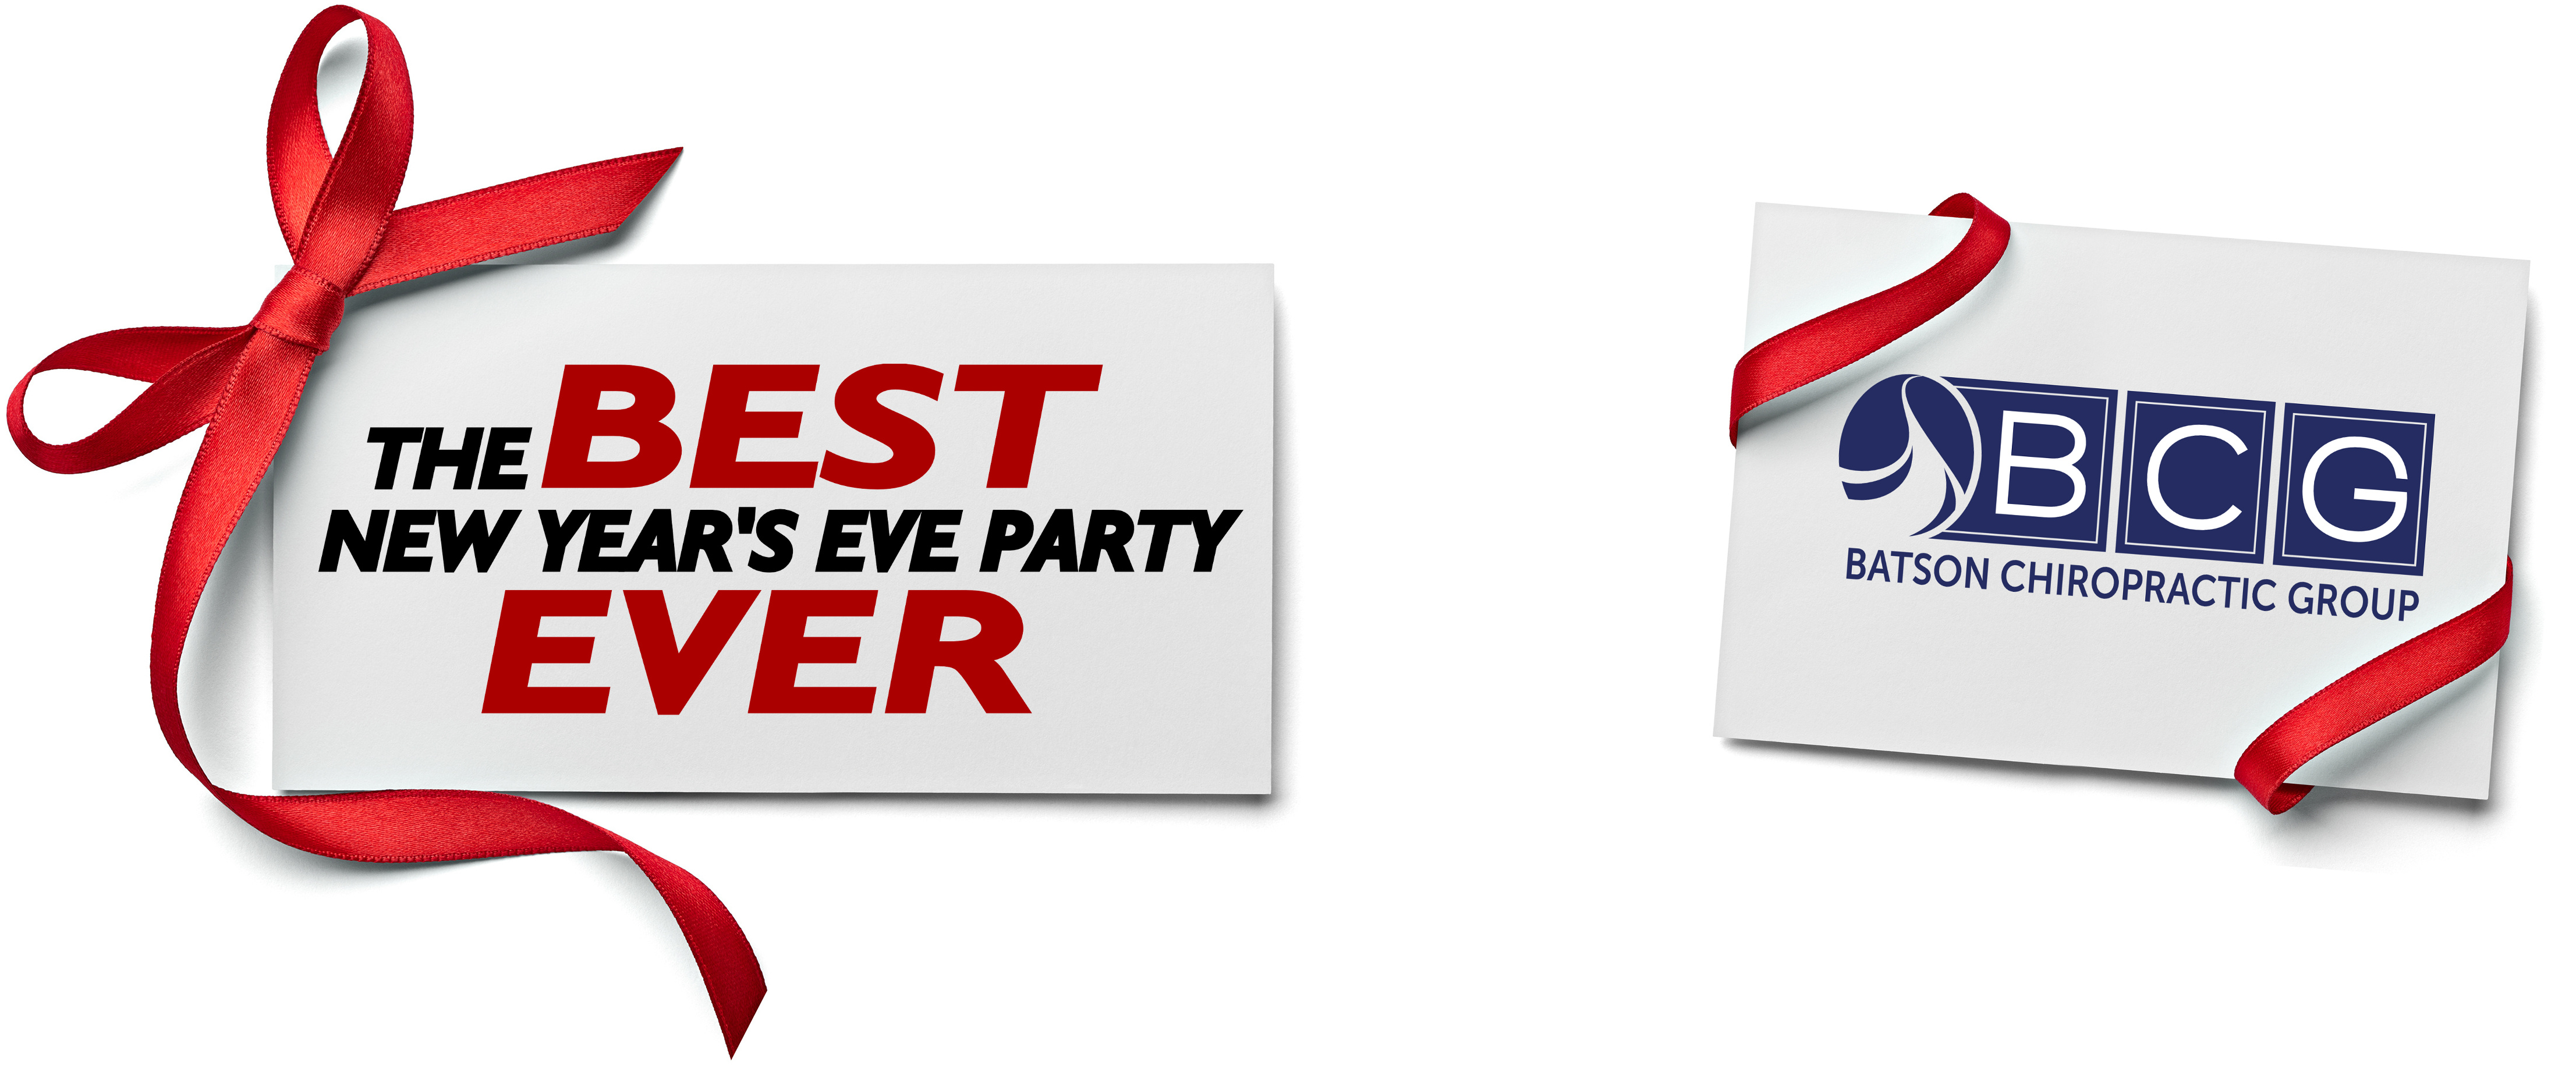 The Best New Years Eve Party Ever Banner